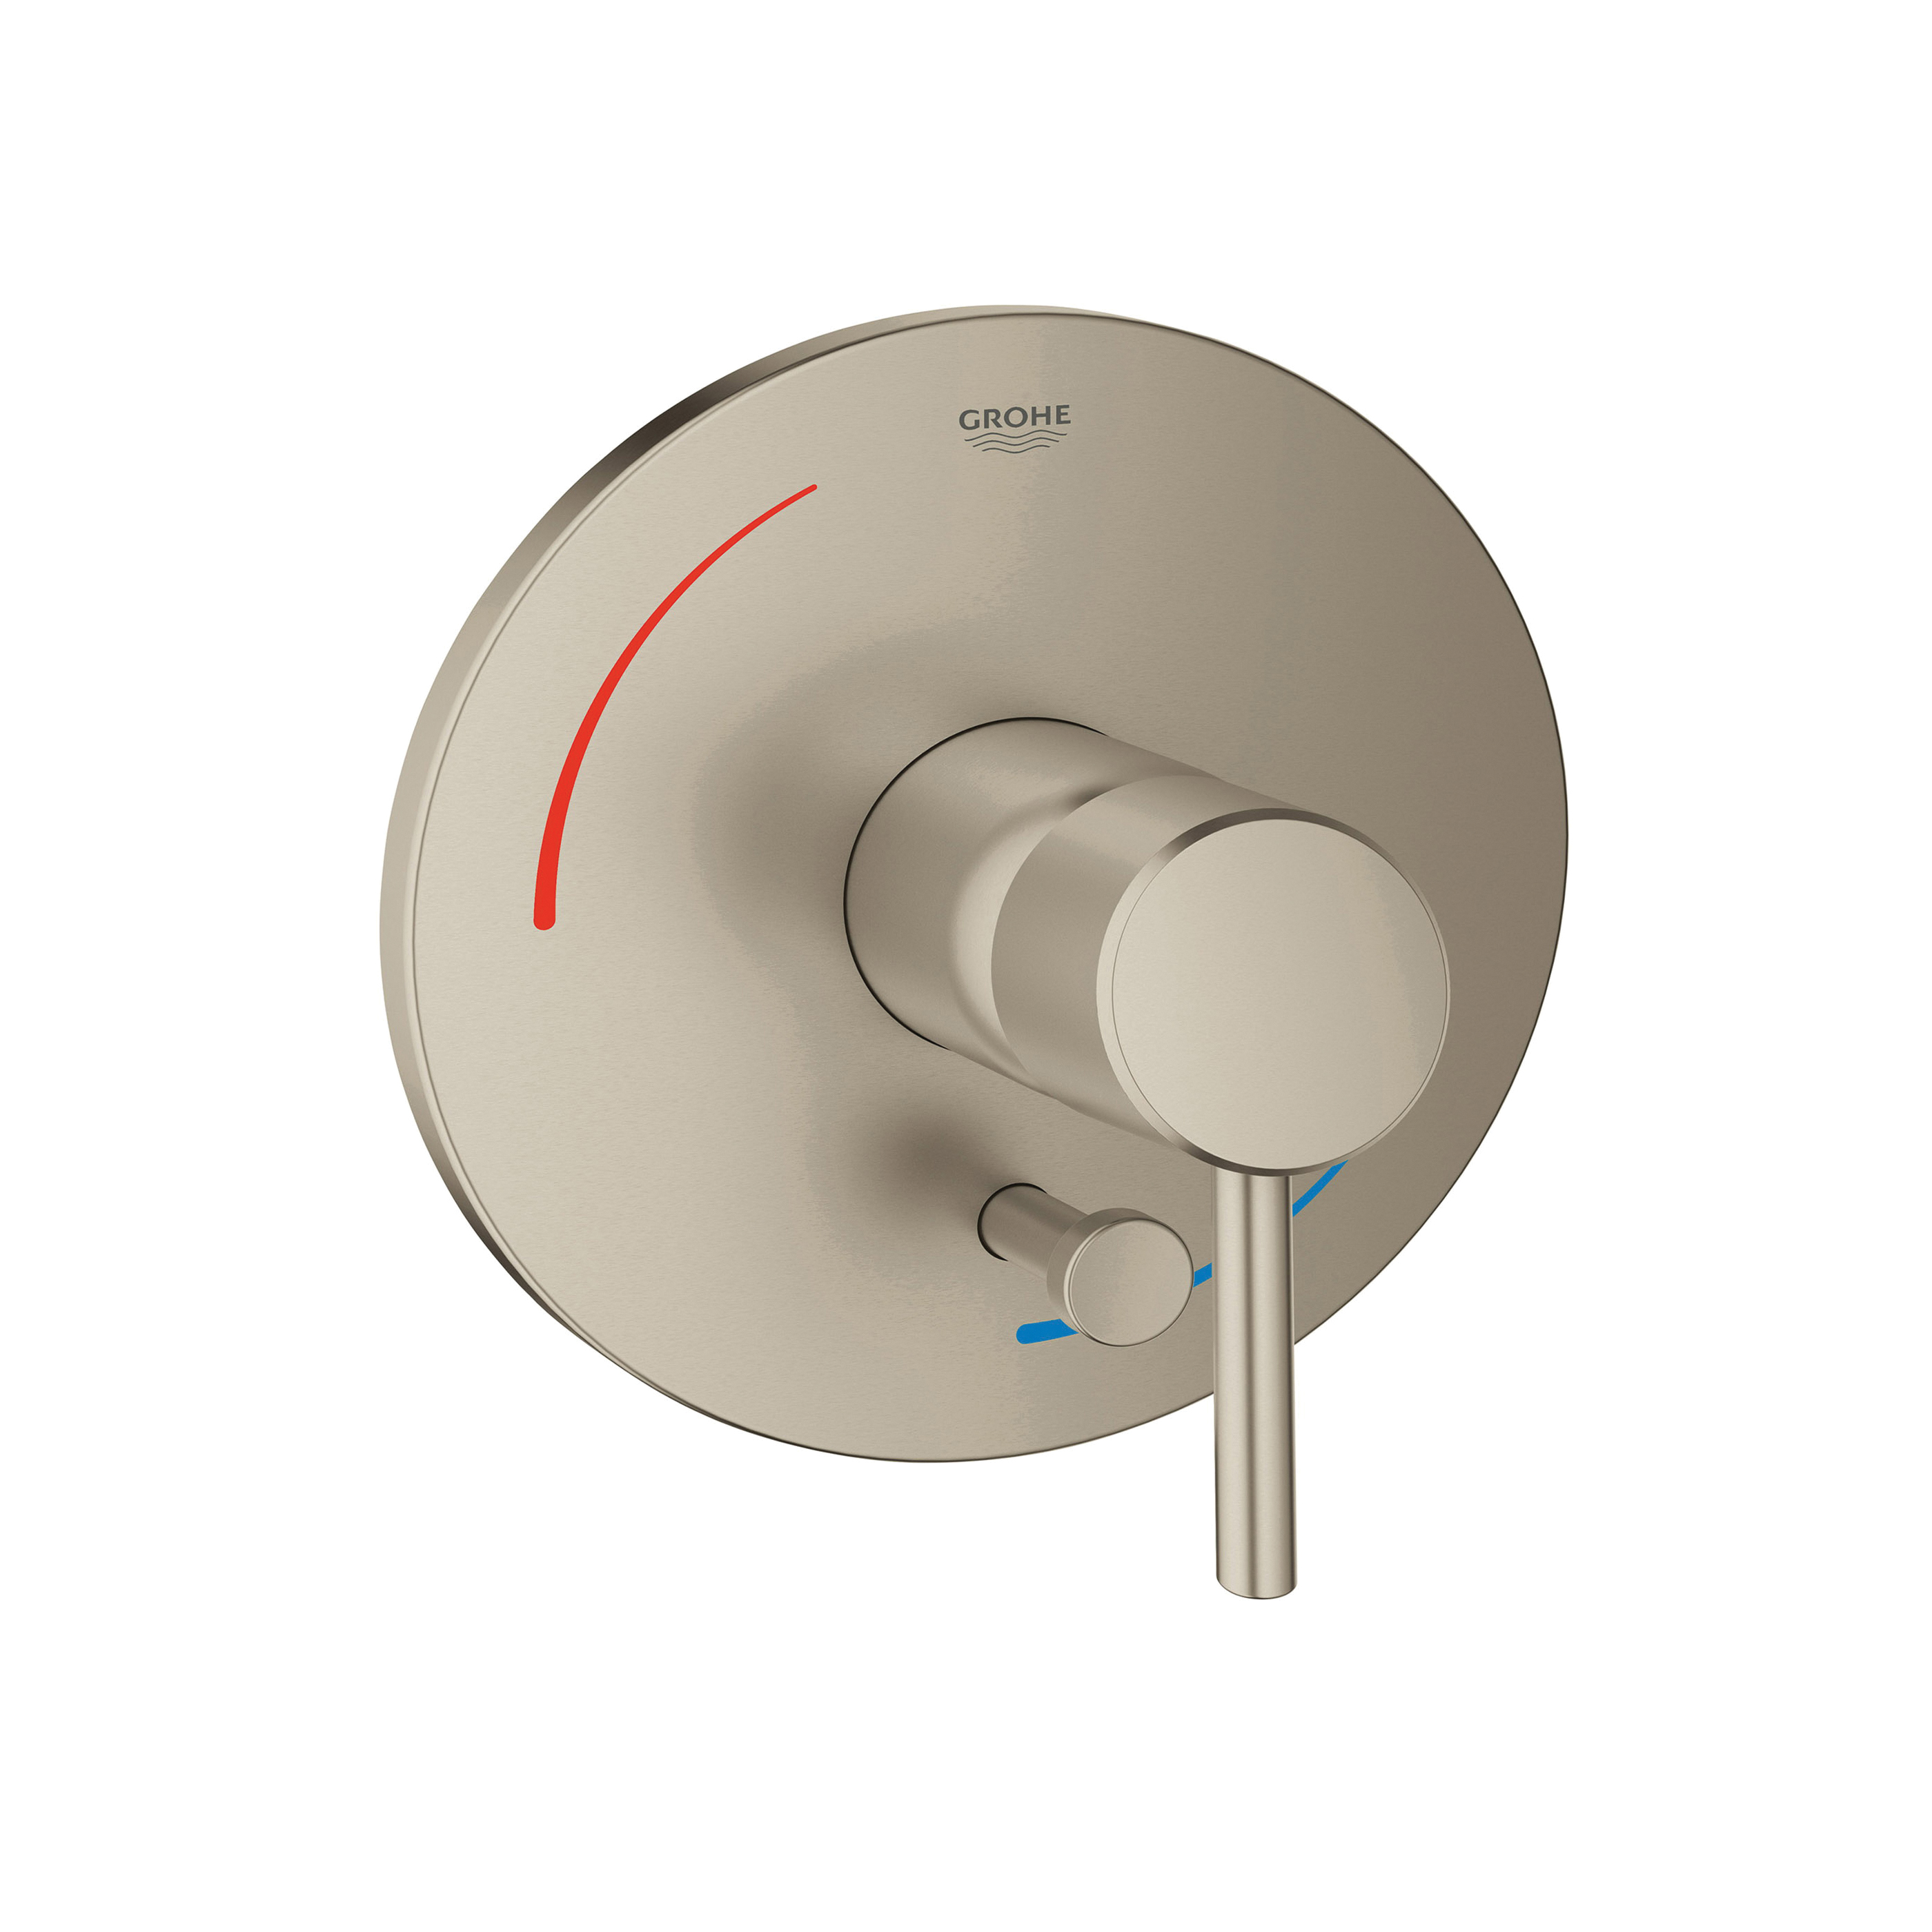 GROHE 29102EN1 Concetto Pressure Balance Valve Trim With Diverter, For Use With GrohSafe® 35016/35033 Rough-In Valve with Built in Diverter, StarLight® Brushed Nickel, Import